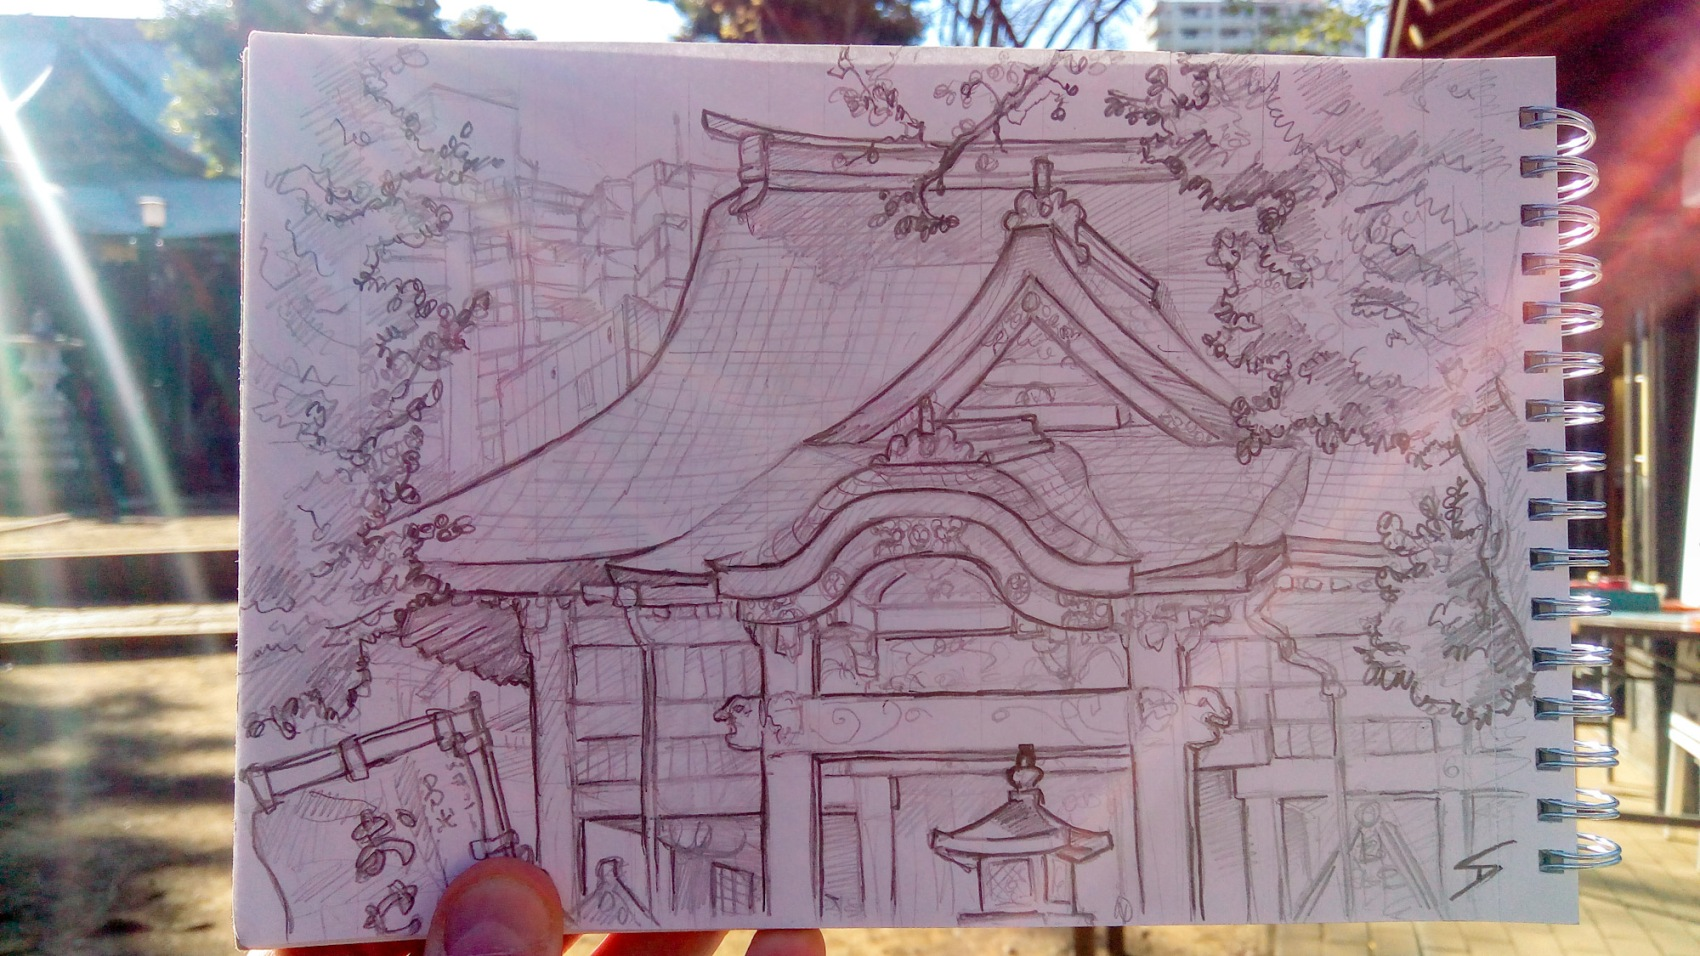 Urban photo art – Toshima City, Tokyo, Japan. 'Zoshigaya Kishimoiji Shrine.' Complete image from my latest travel art blog article 'Sakura Japan.' Now online - sketchbookexplorer.com @davidasutton @sketchbookexplorer Facebook.com/davidanthonysutton #sketch #drawing #art #japan #tokyo #sakura #zoshigayakishimoijishrine #shinto #samurai #travel #travelblog #cherryblossom #cherryblossomseason #cherryblossomjapan